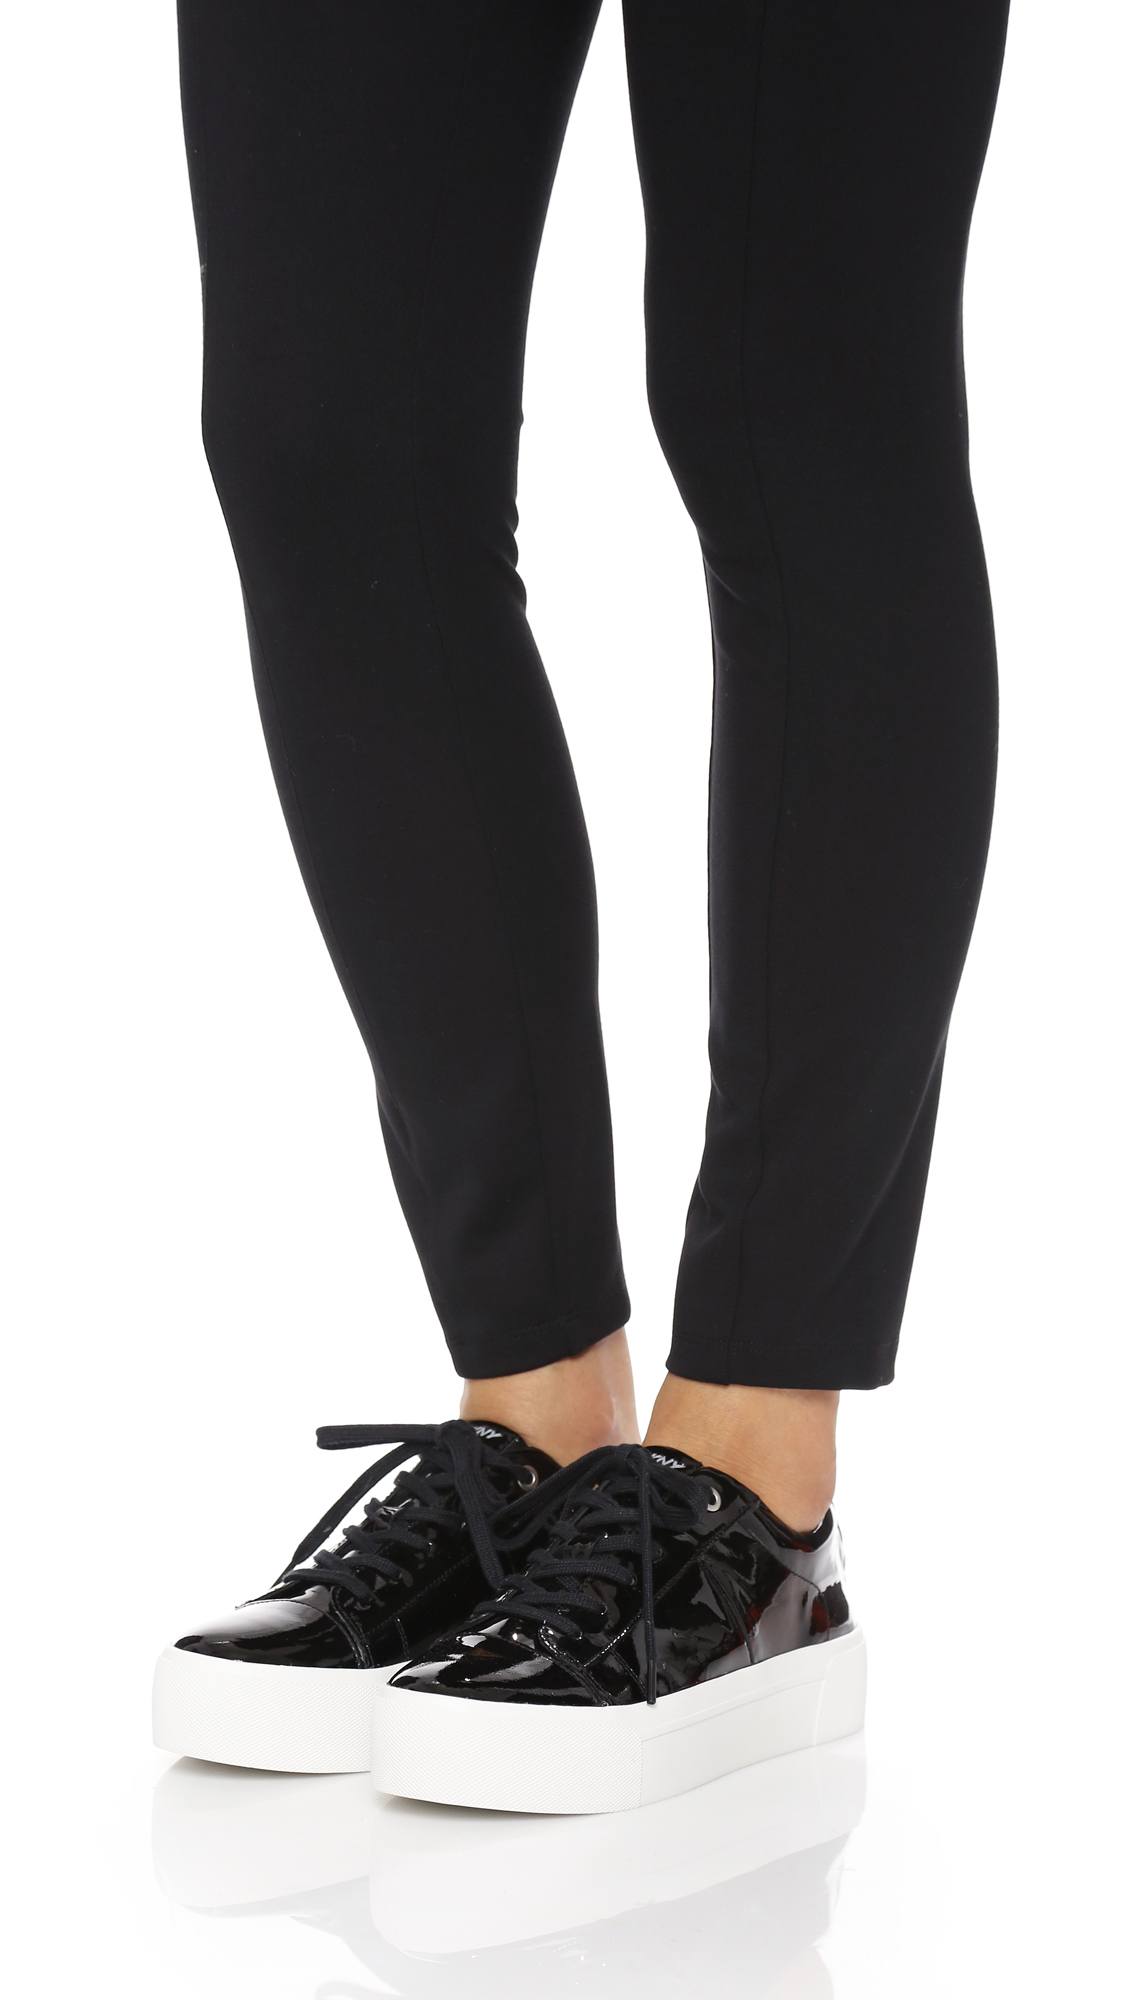 8364aab0839 DKNY Bari Platform Lace Up Sneakers